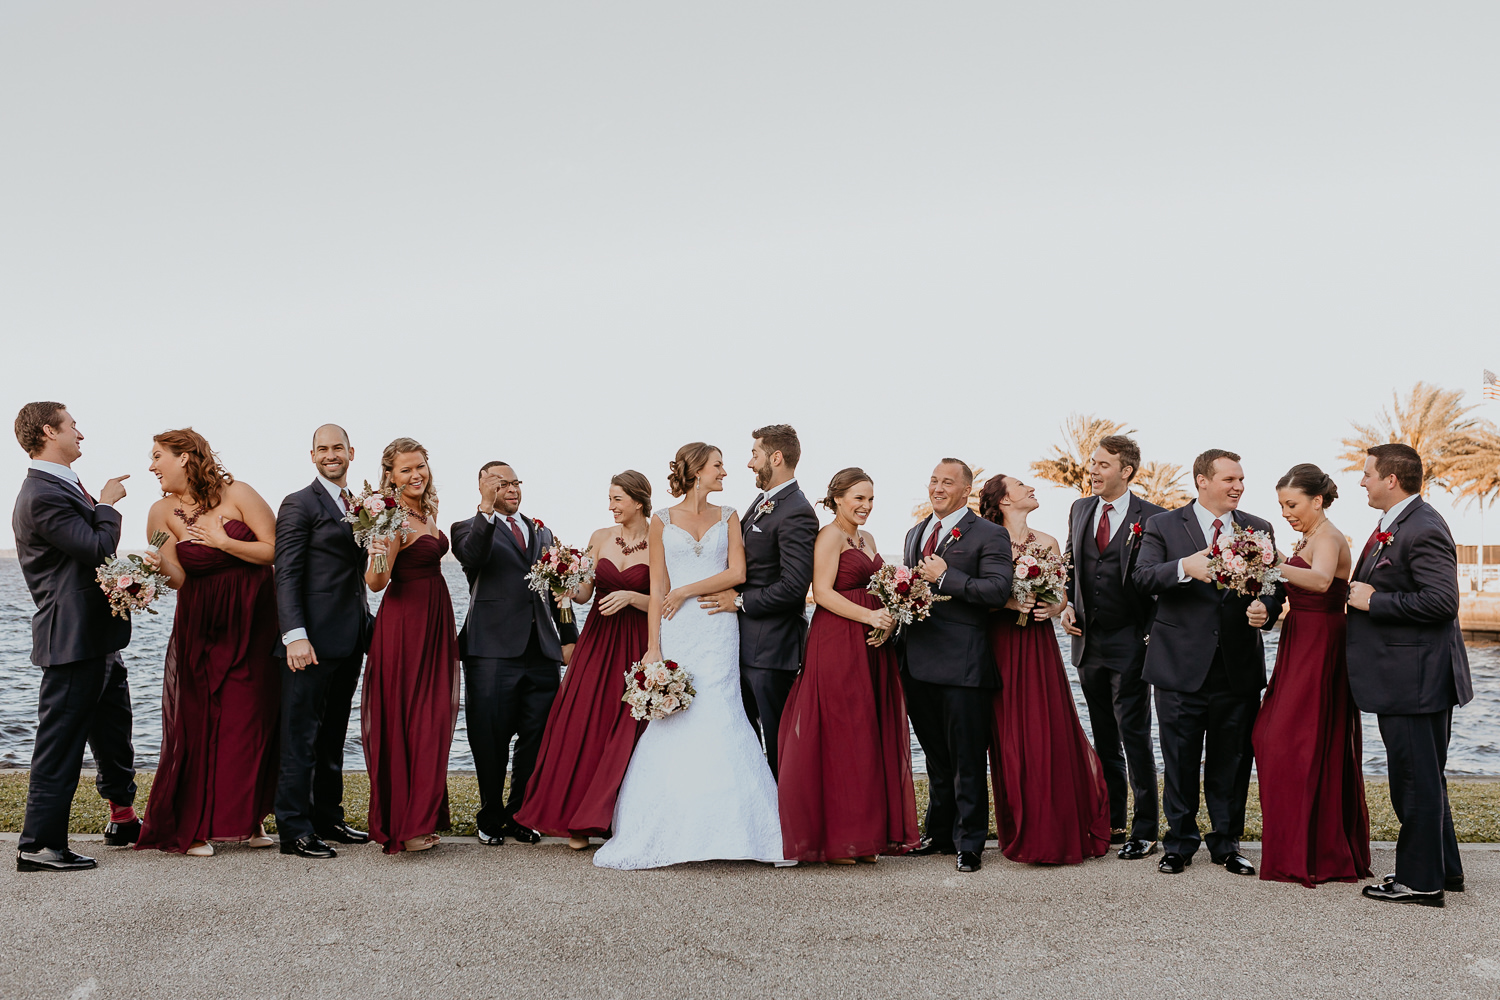 bridal party lined up mixed male and female laughing newlyweds in the middle